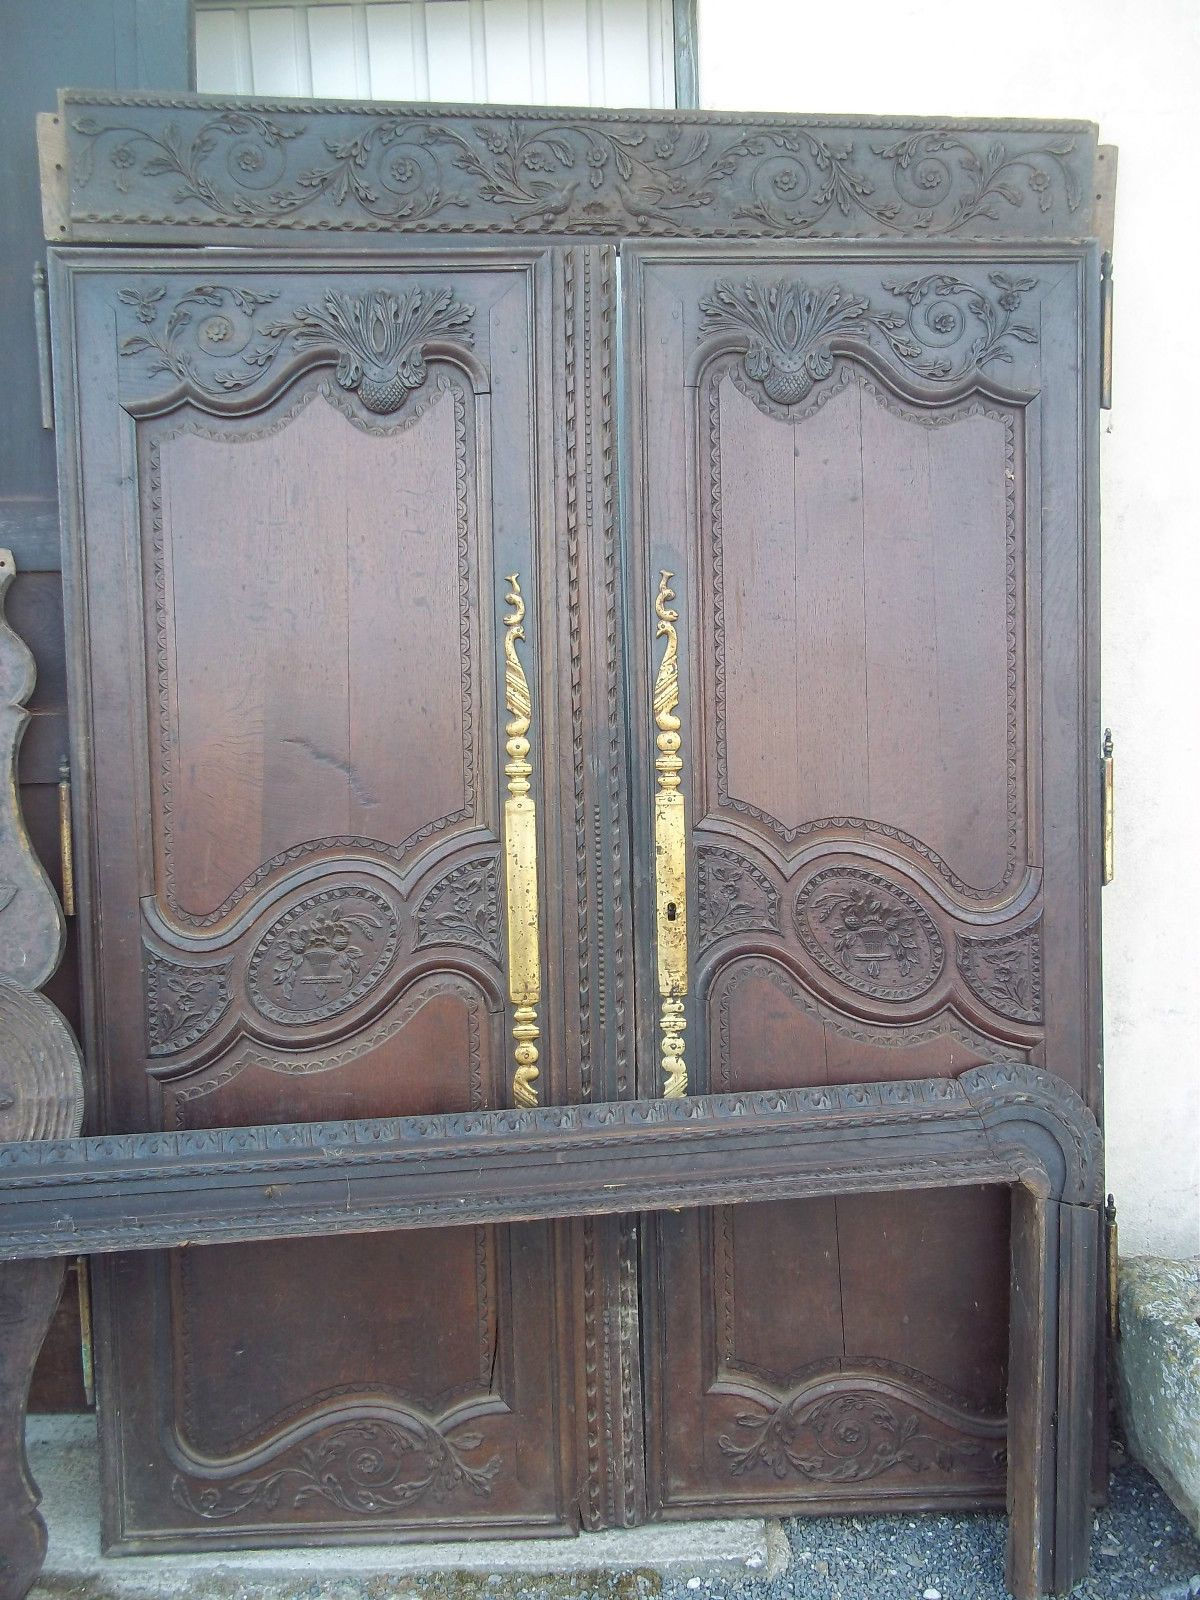 belle armoire normande de mariage a colonnes sculpt e. Black Bedroom Furniture Sets. Home Design Ideas